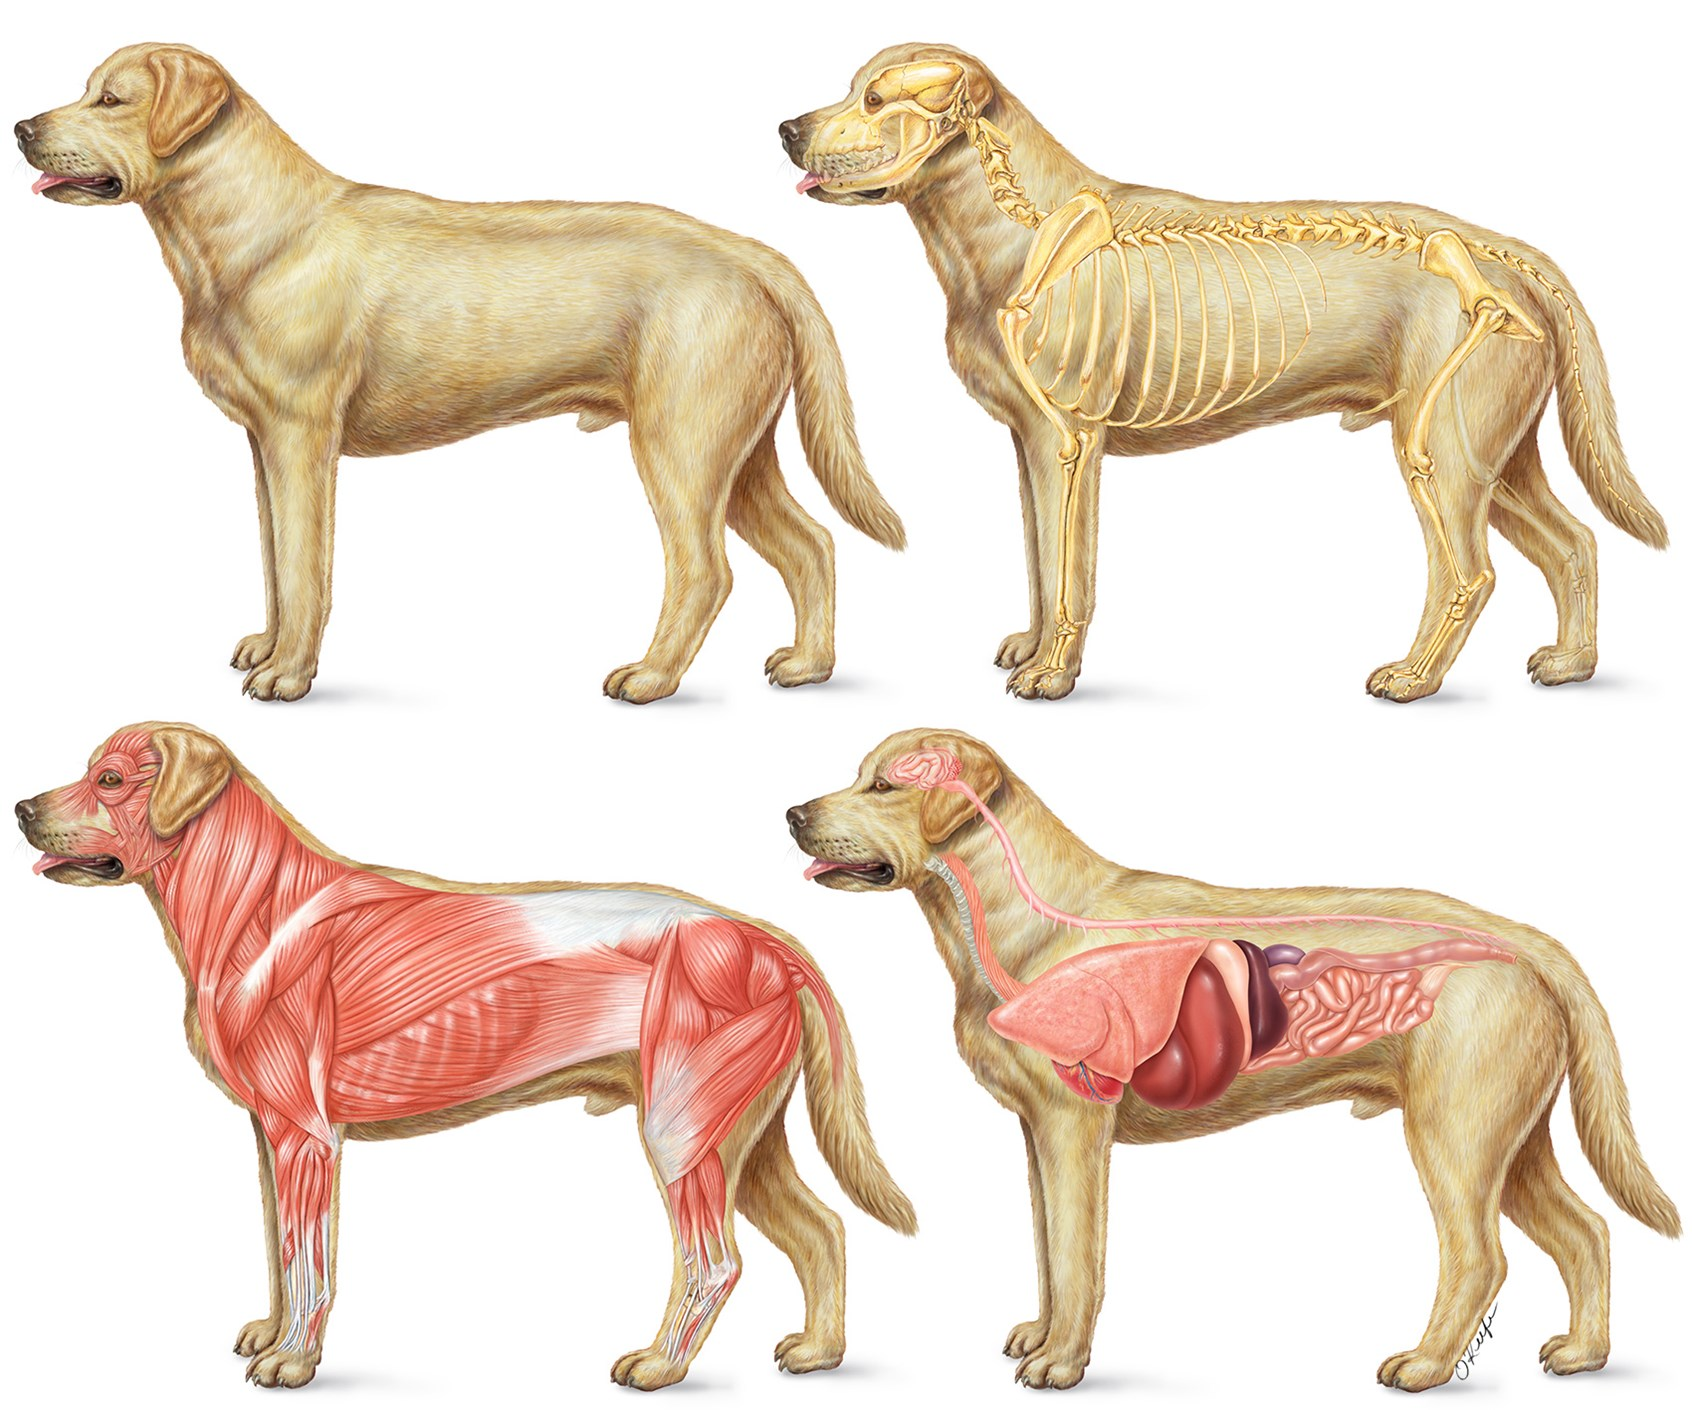 Dog anatomy muscles 1281641 - follow4more.info